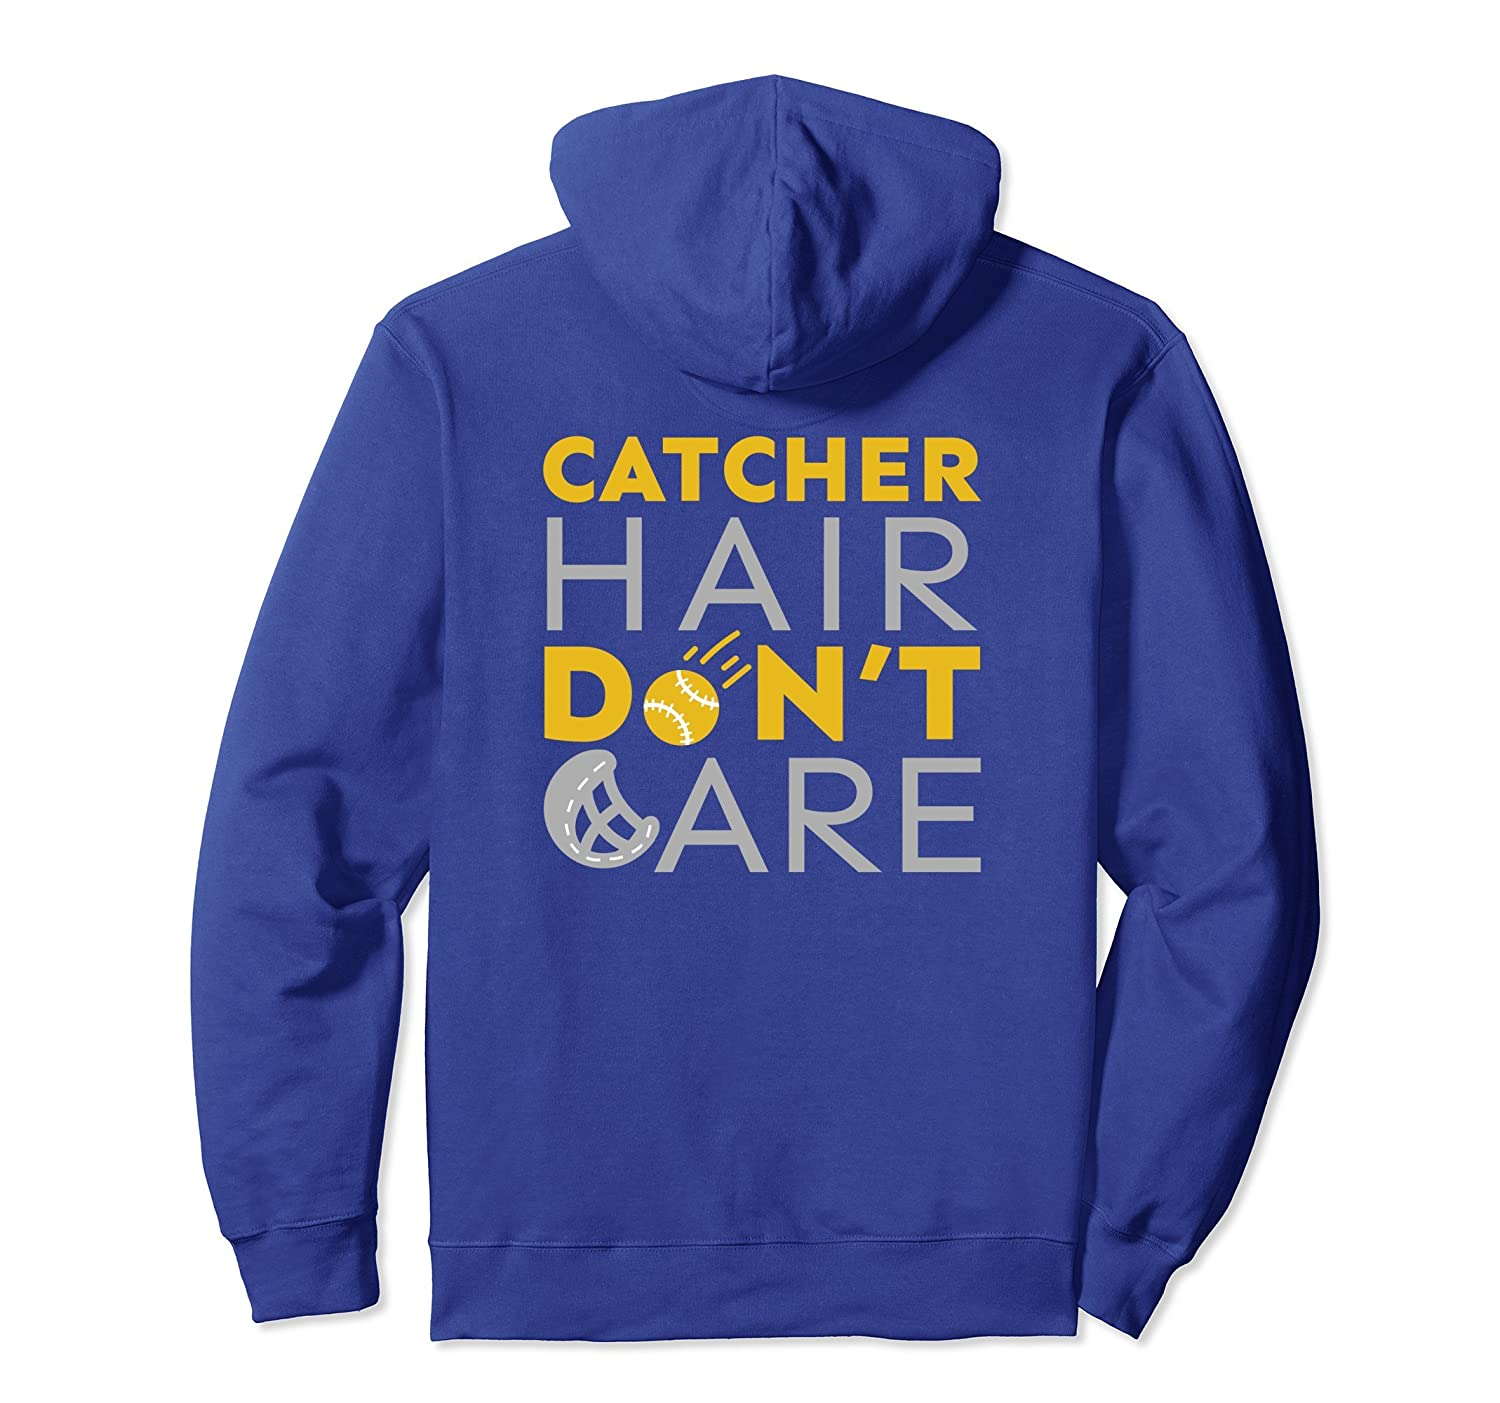 Catcher Hair Don't Care Girls Softball Fastpitch Hoodie Gift-mt